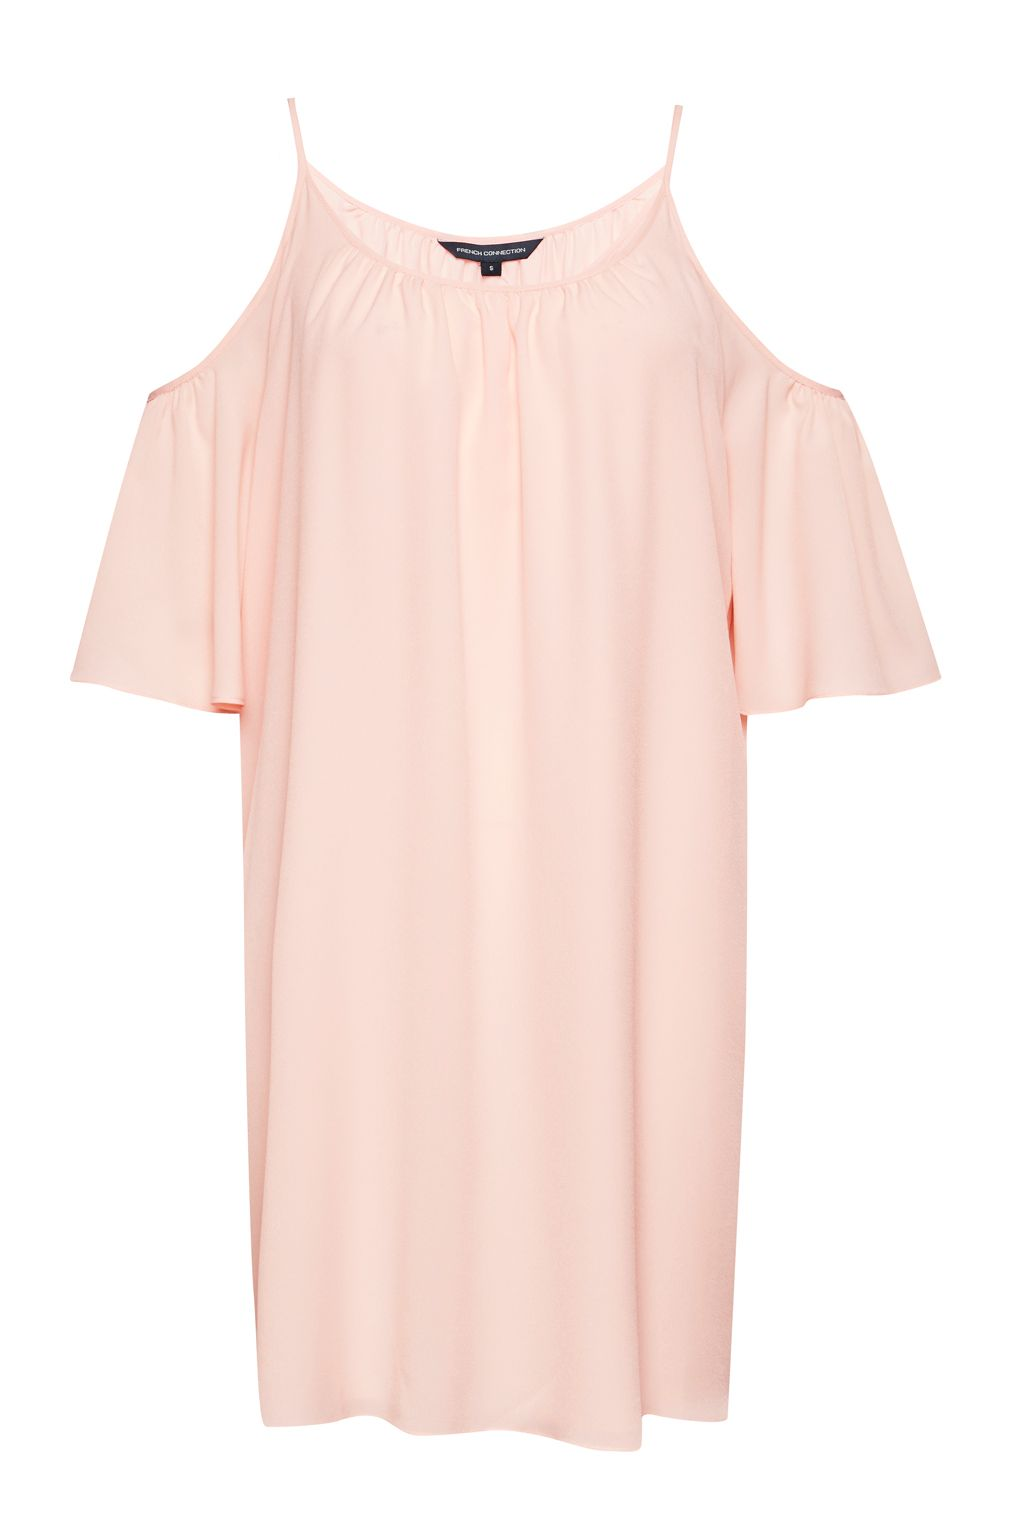 French Connection Crepe Light Cold Shoulder Dress, Pink